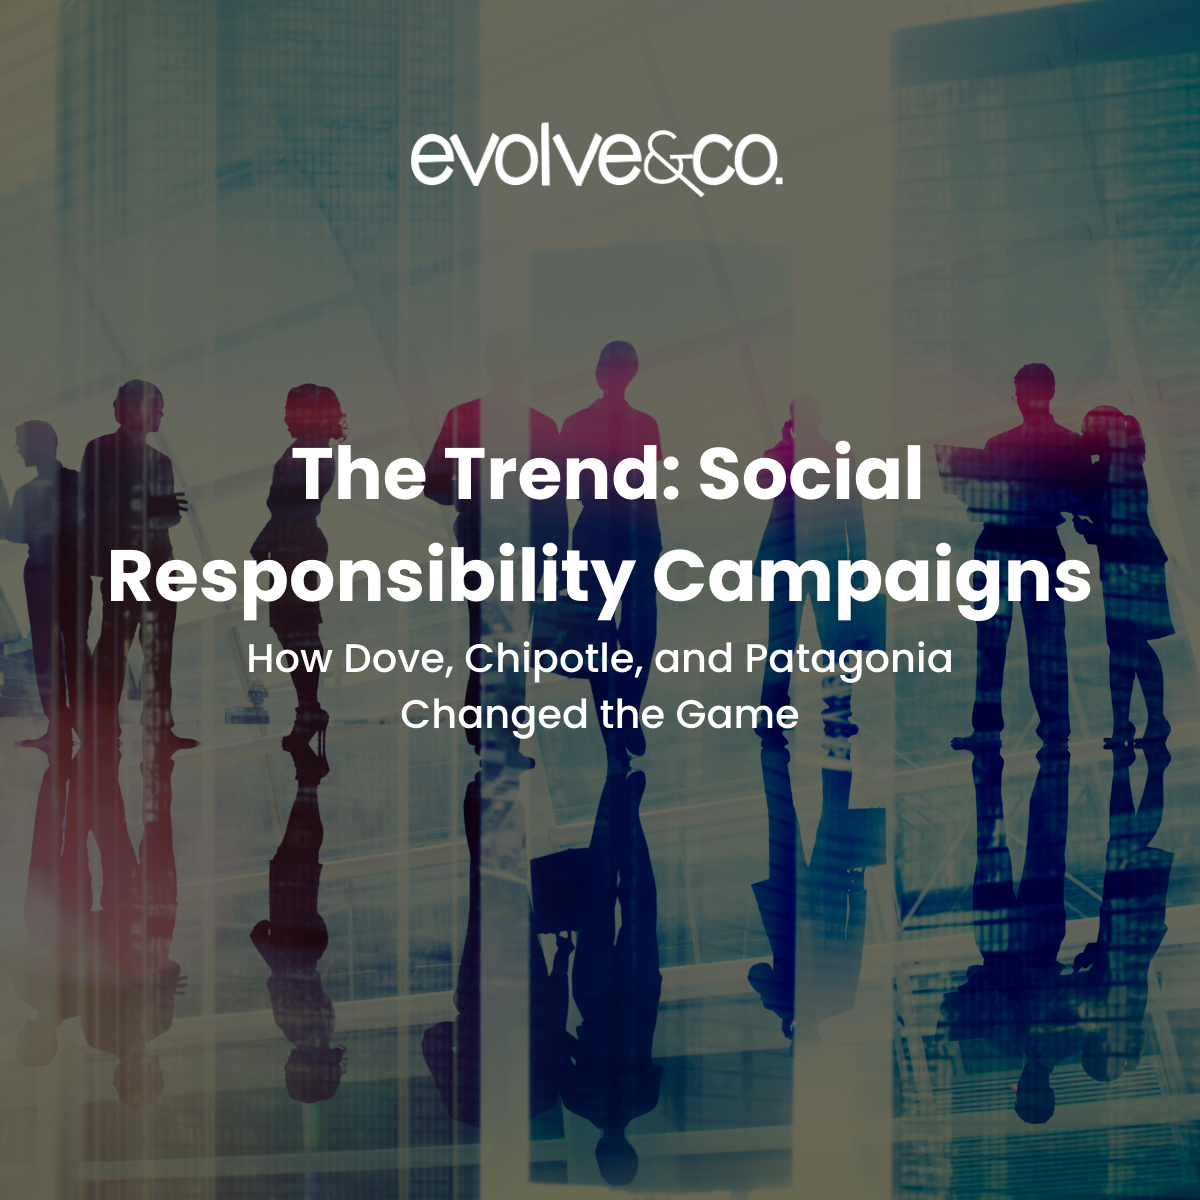 The Trend: Social Responsibility Campaigns